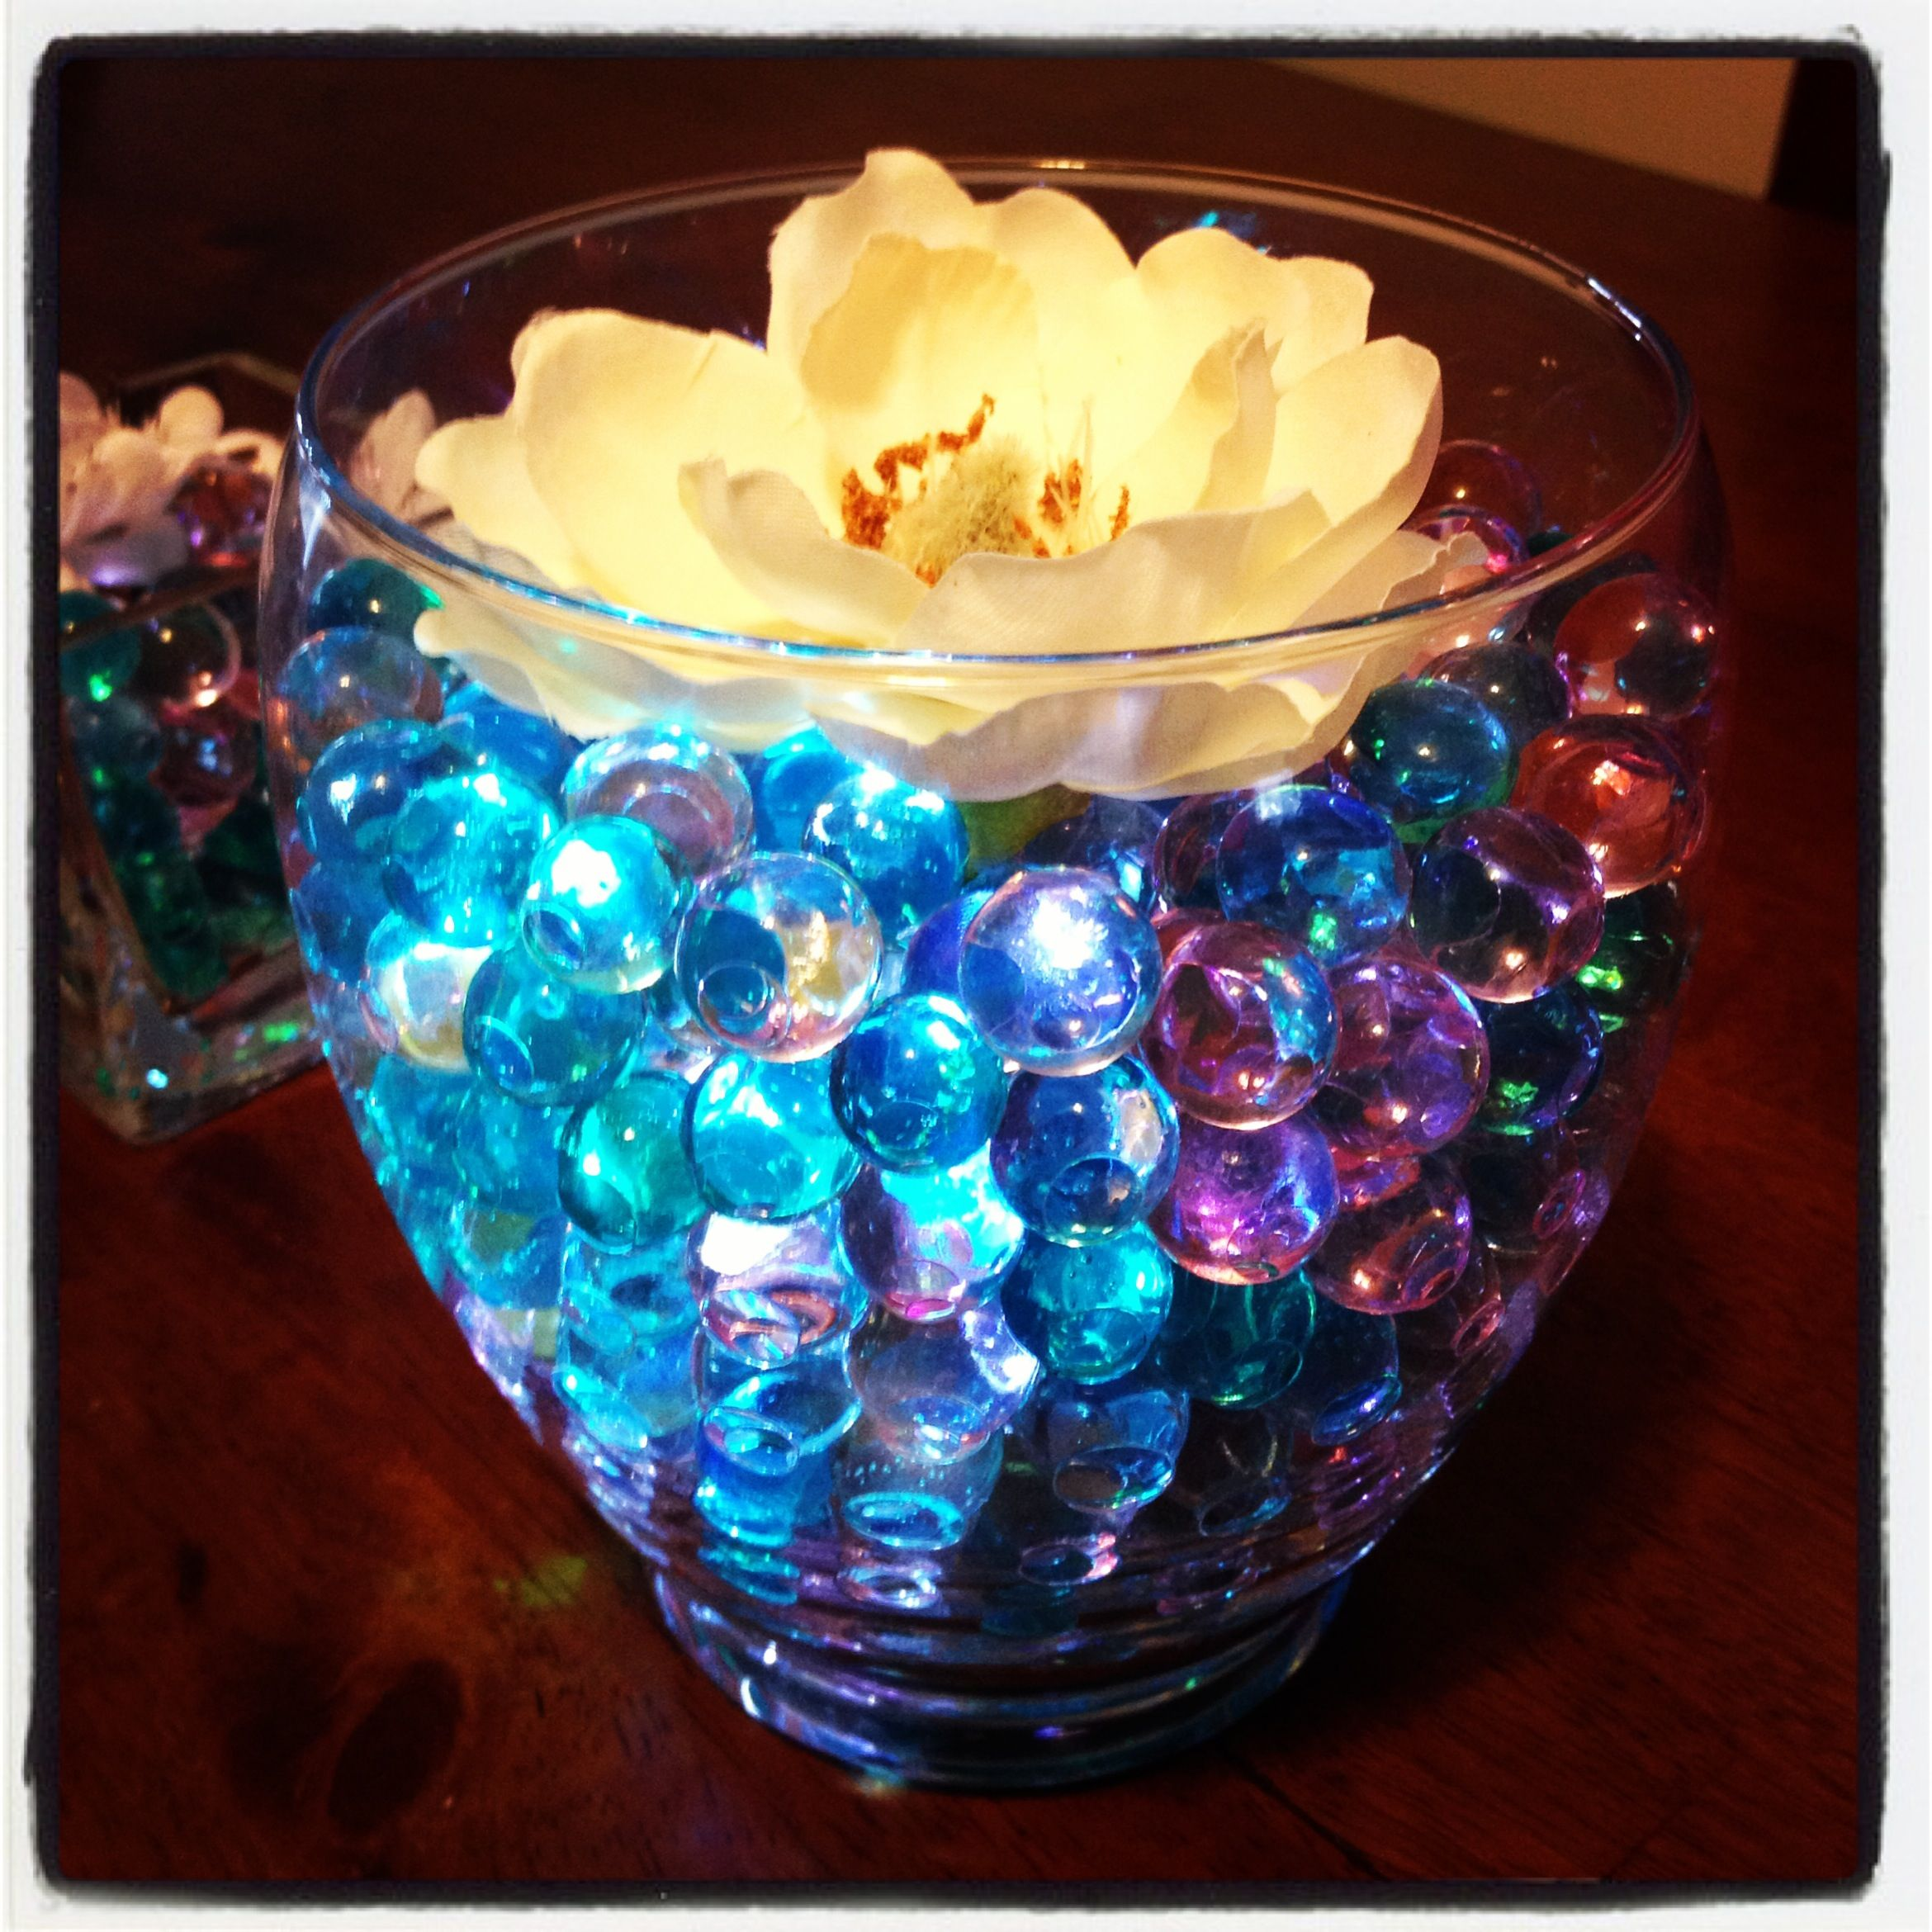 Water Wedding Centerpiece Ideas: Centerpiece With Water Beads And Light!